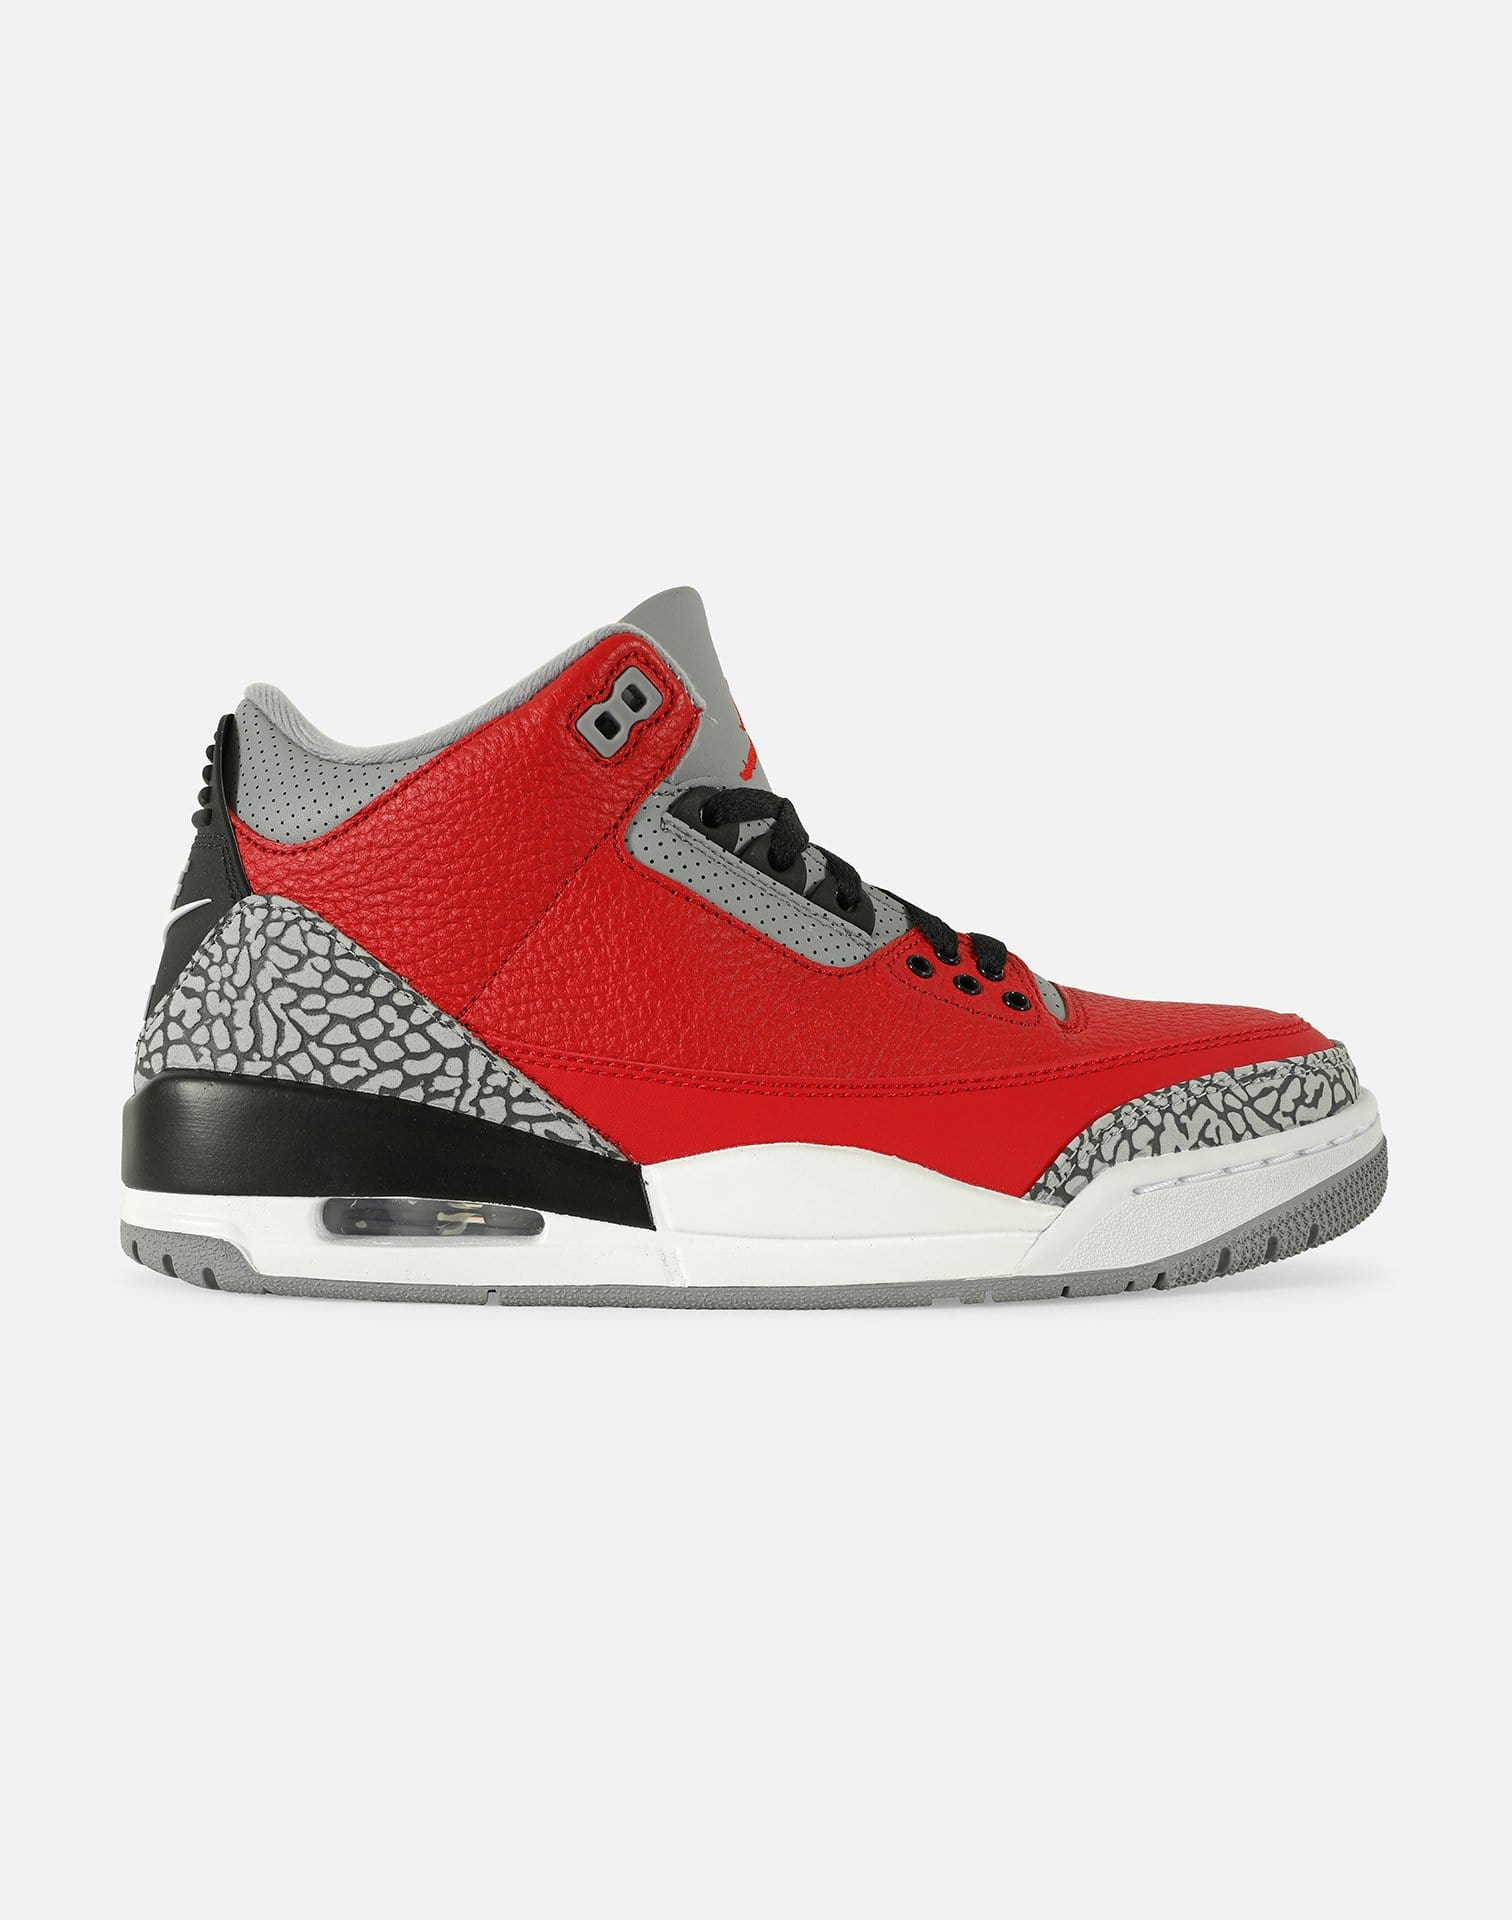 Jordan AIR JORDAN RETRO 3 SE 'CHICAGO' GRADE-SCHOOL